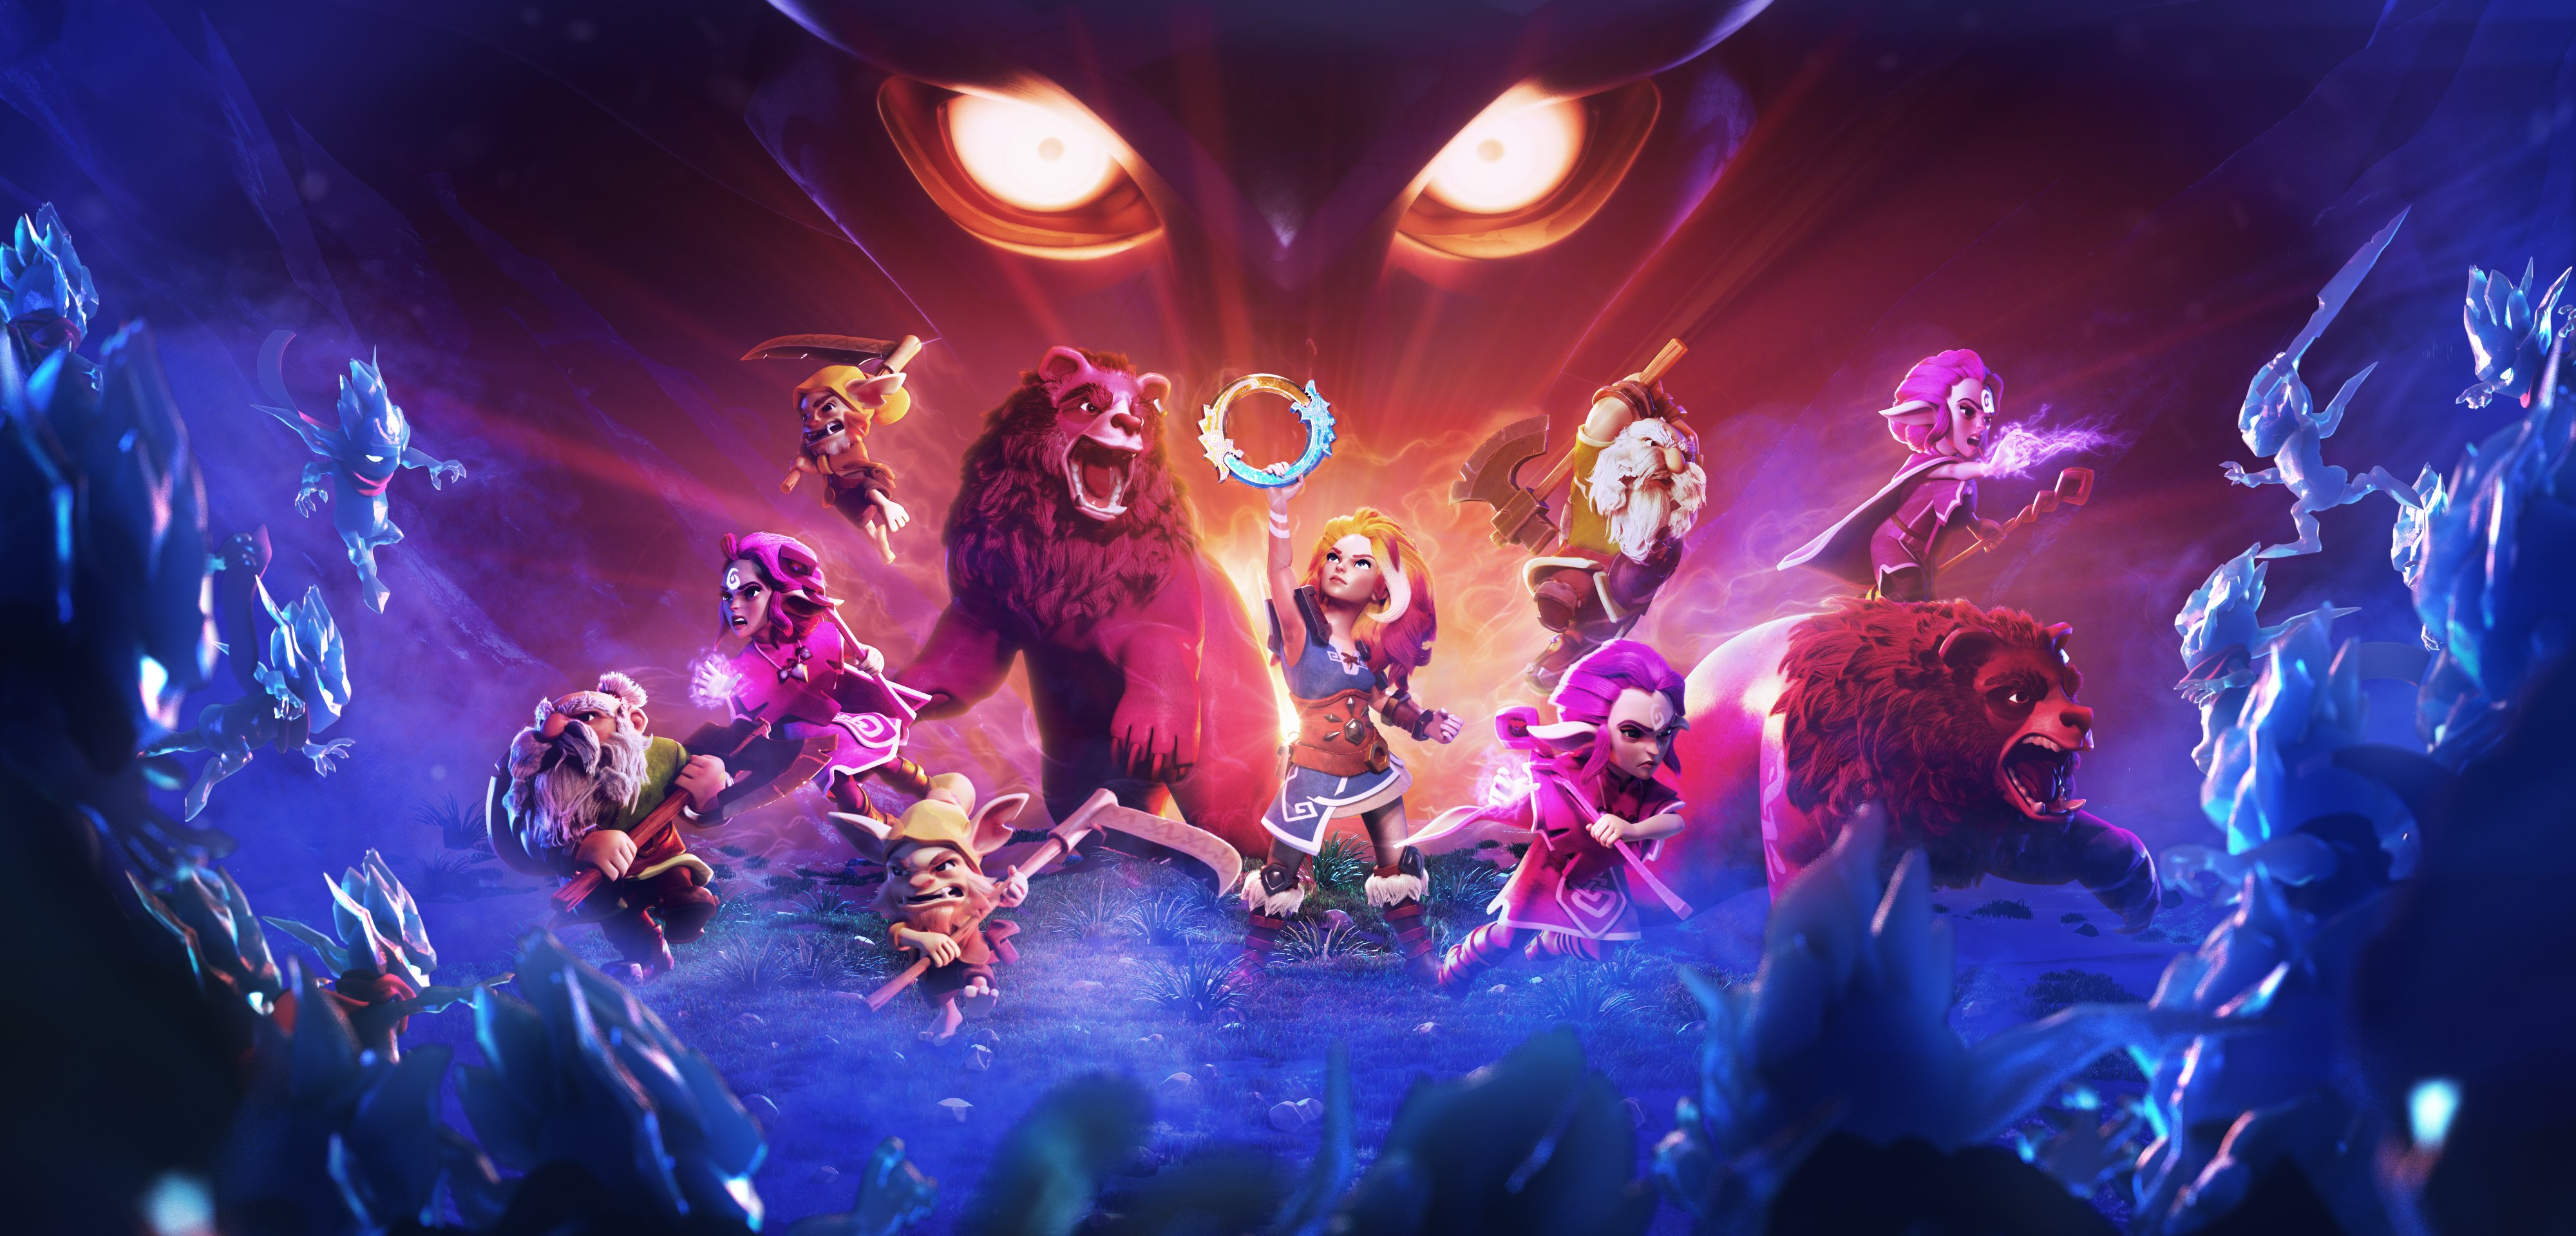 The creators of Candy Crush's next project: Legend of Solgard, a Ragnarok themed RPG screenshot